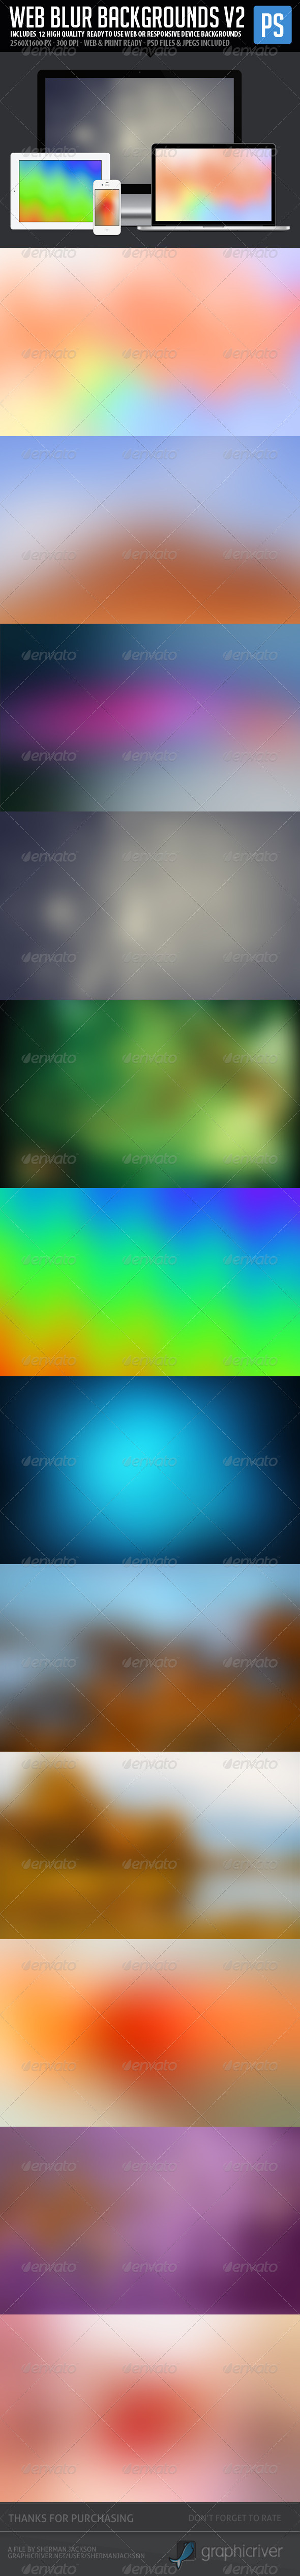 Web Blur Backgrounds V2 (12 in 1) - Backgrounds Graphics